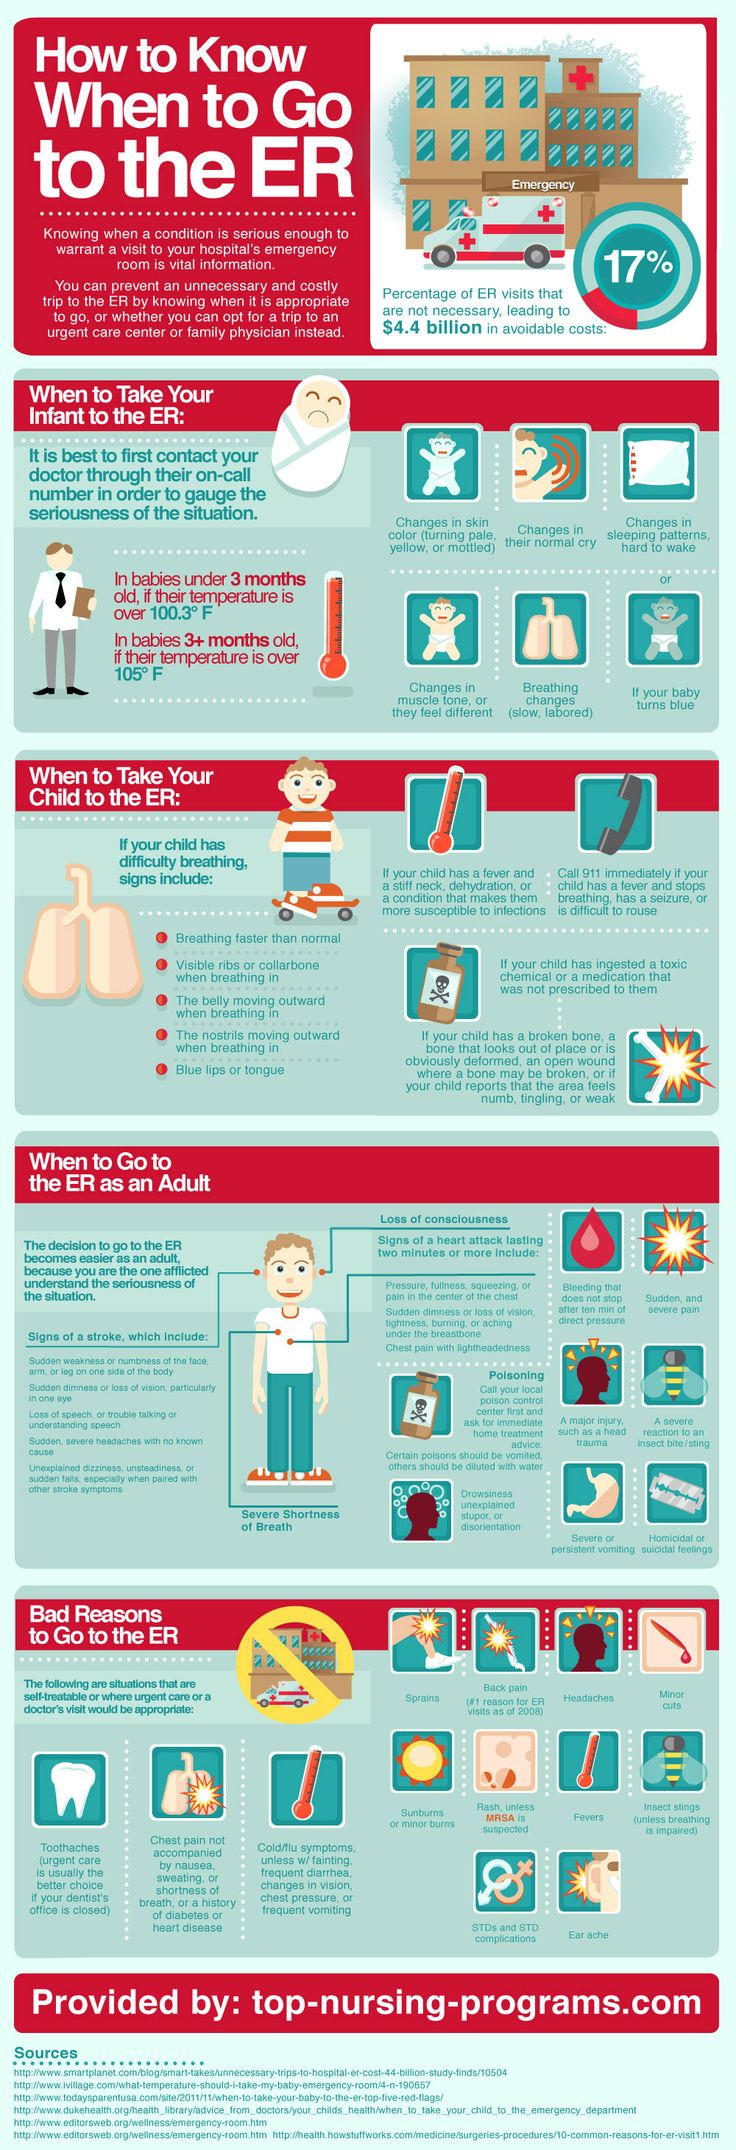 Knowing when a condition is serious enough to warrant a visit to your hospital's emergency